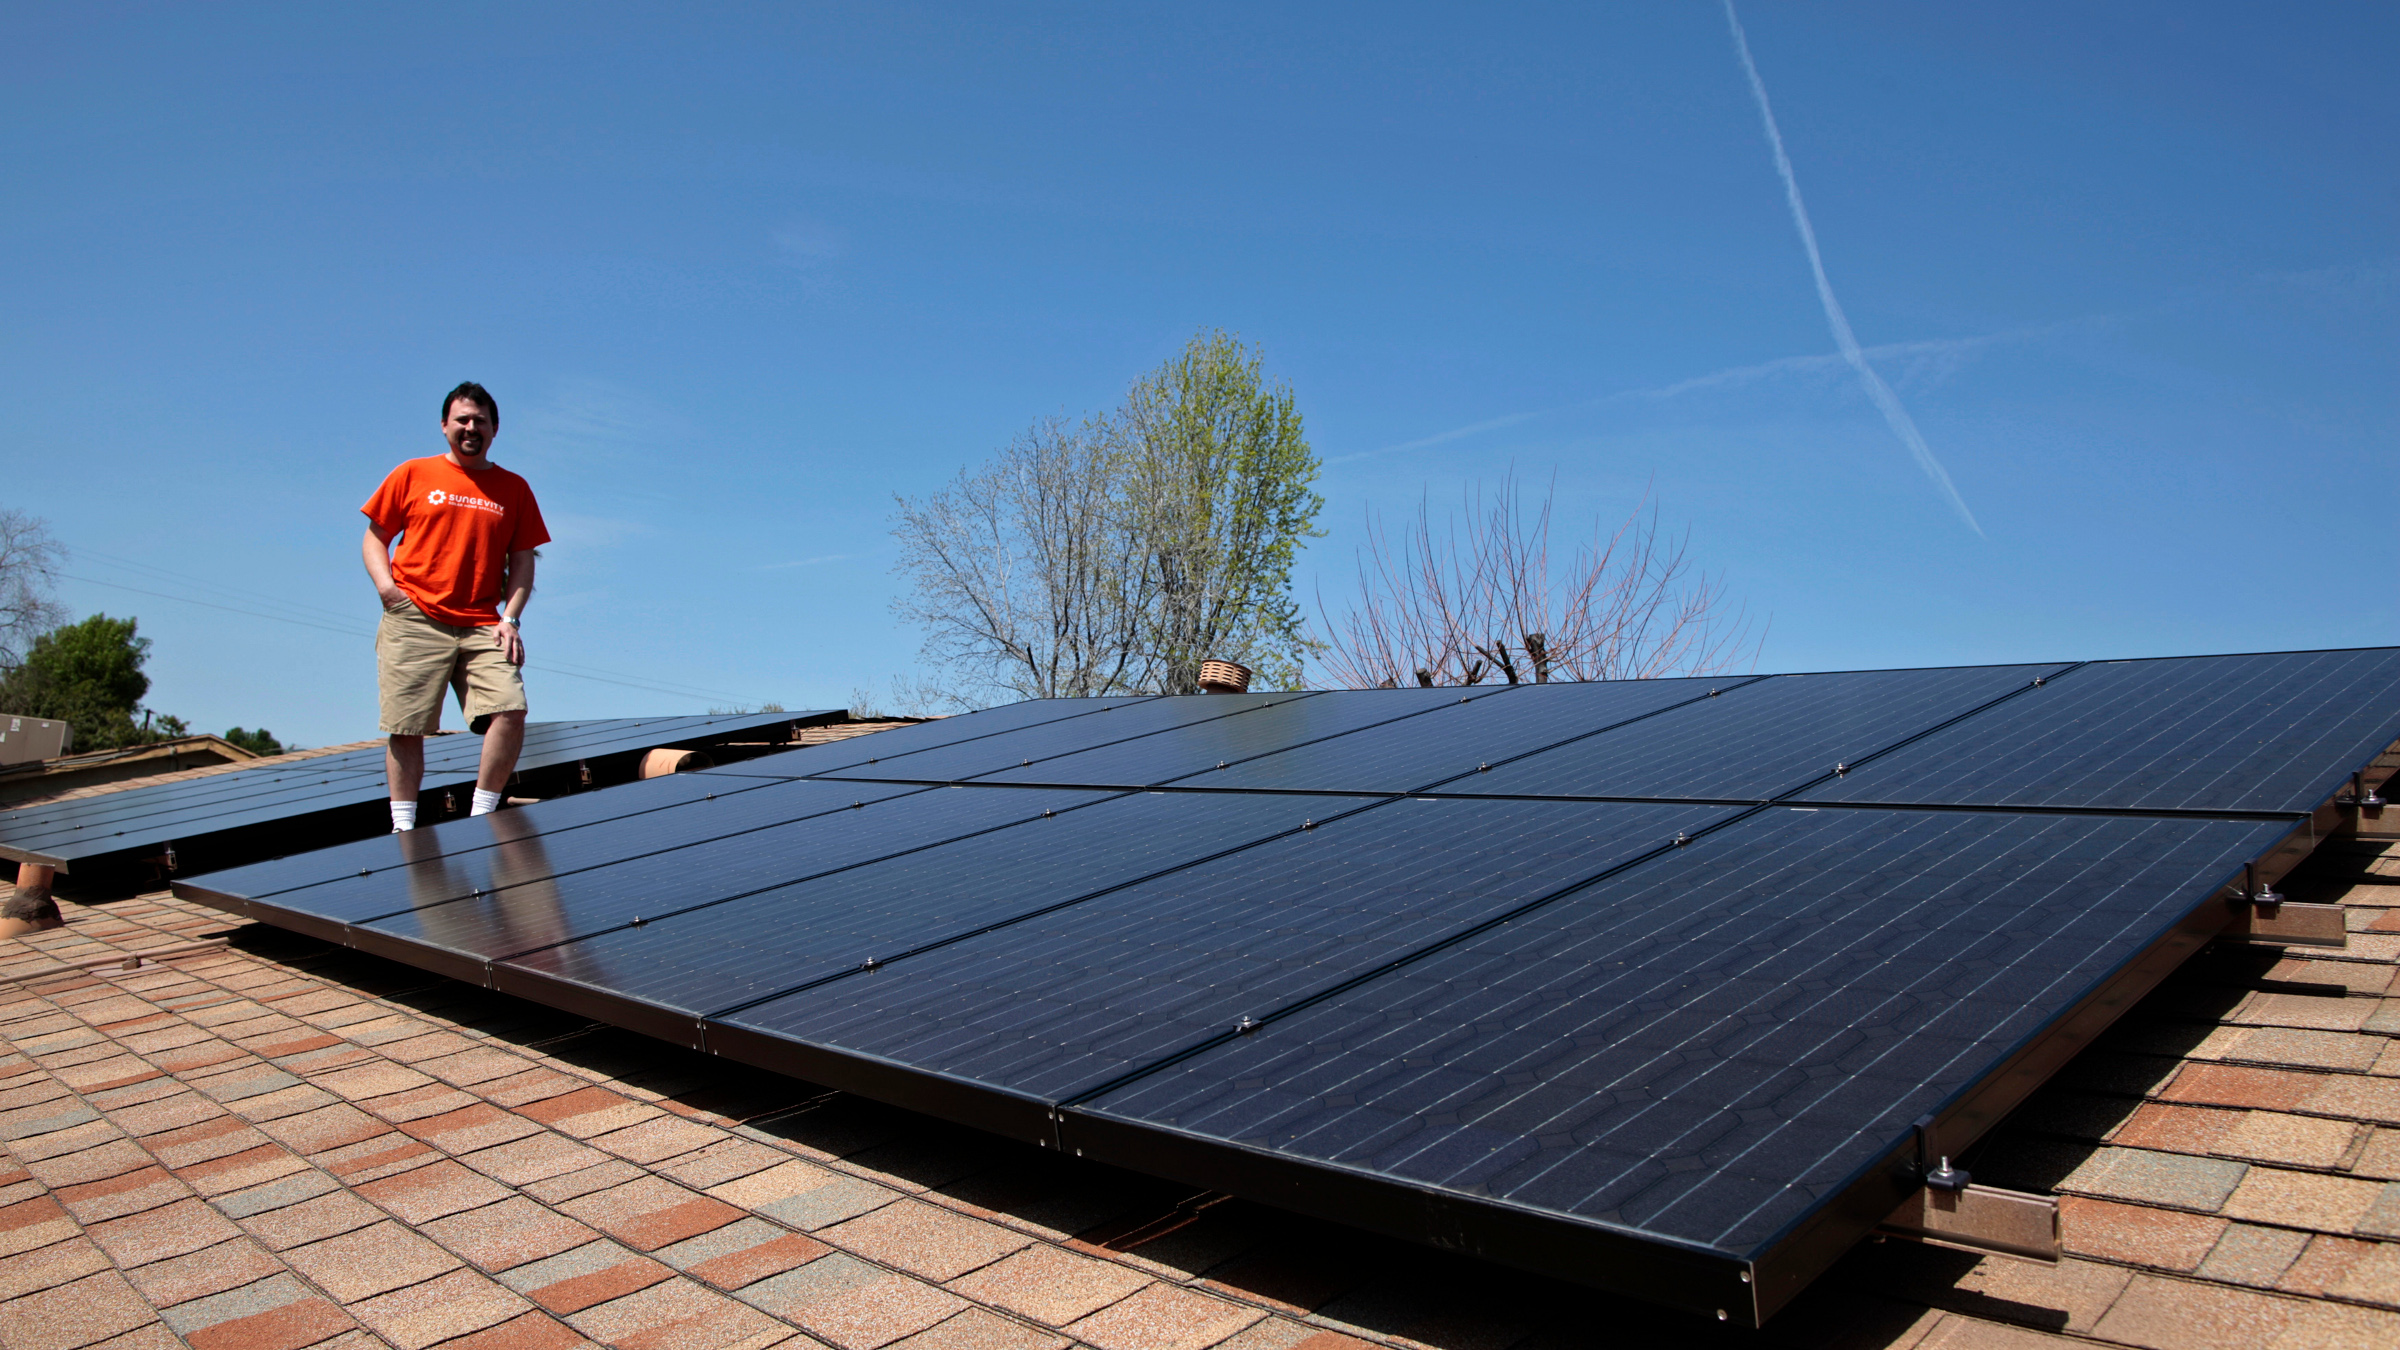 Mike Jones stands next to solar panels on the roof of his home in Los Angeles, California March 18, 2011. Jones leased 22 solar panels from solar electric system company Sungevity. The panels would have cost him $13,000, but the 20-year lease cost $4,000. The first month after the panels were installed Jones' electricity bill went down from $160 to $11.